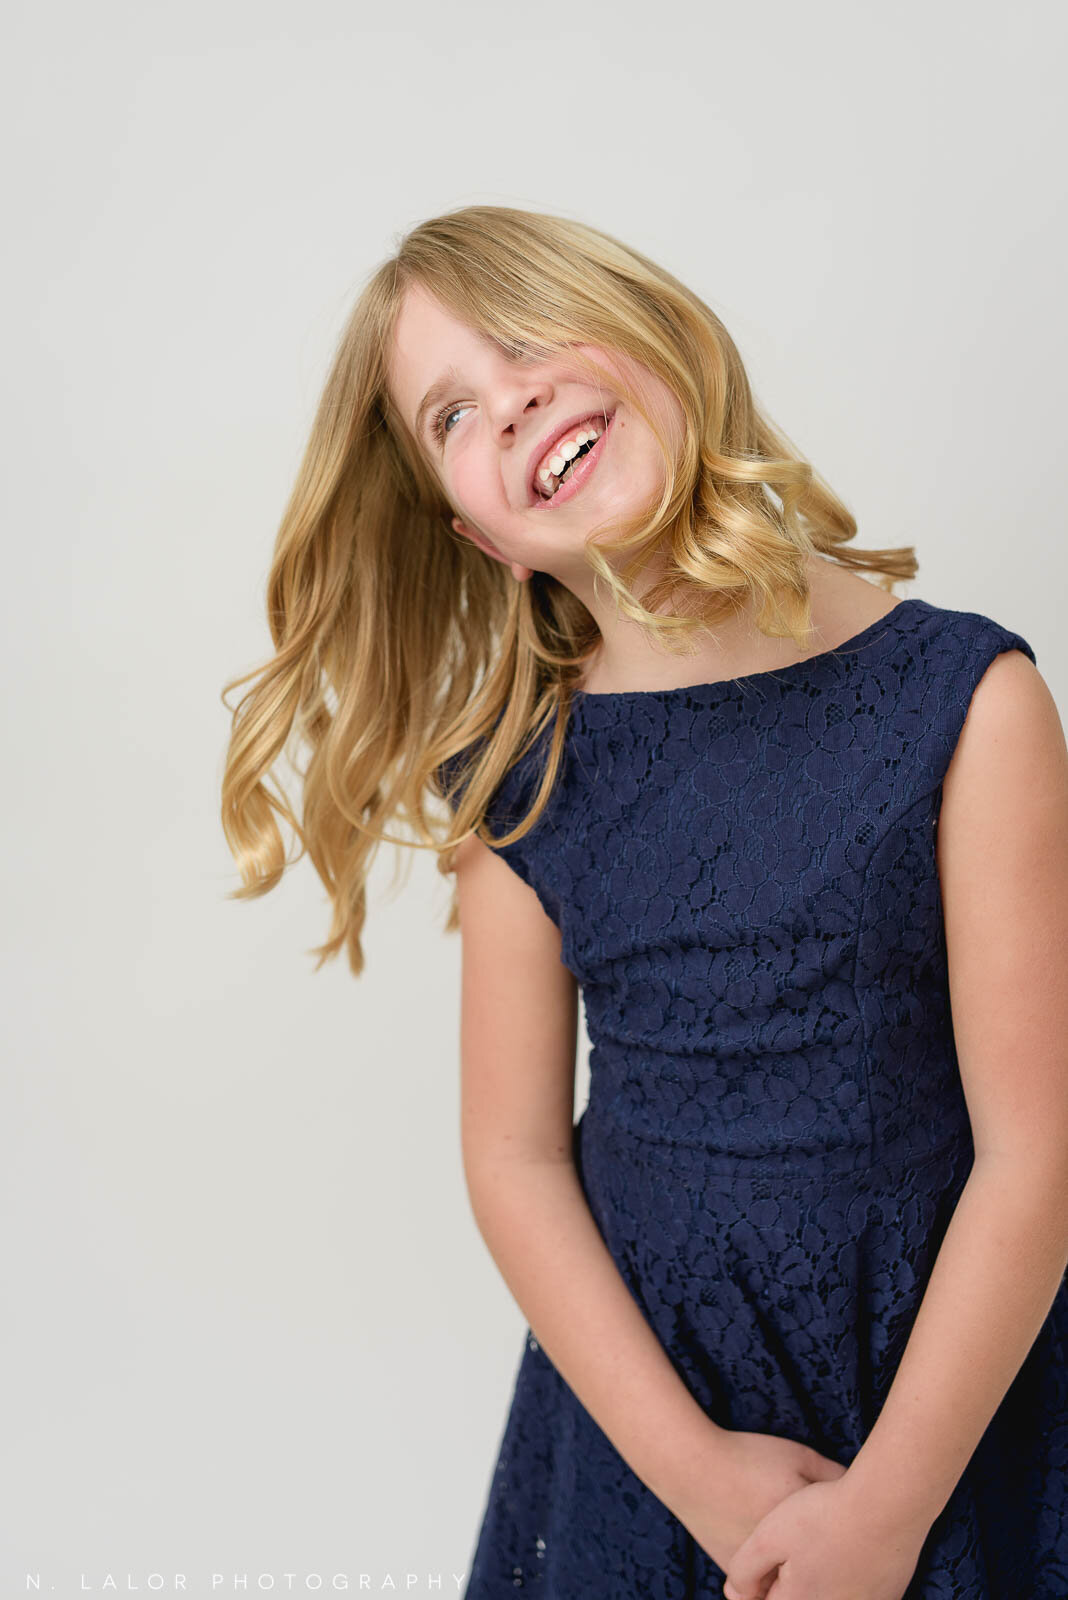 Dancing, jumping, and hair flipping are all super fun during a portrait session, but it does make getting a photograph that's in focus a lot more challenging!